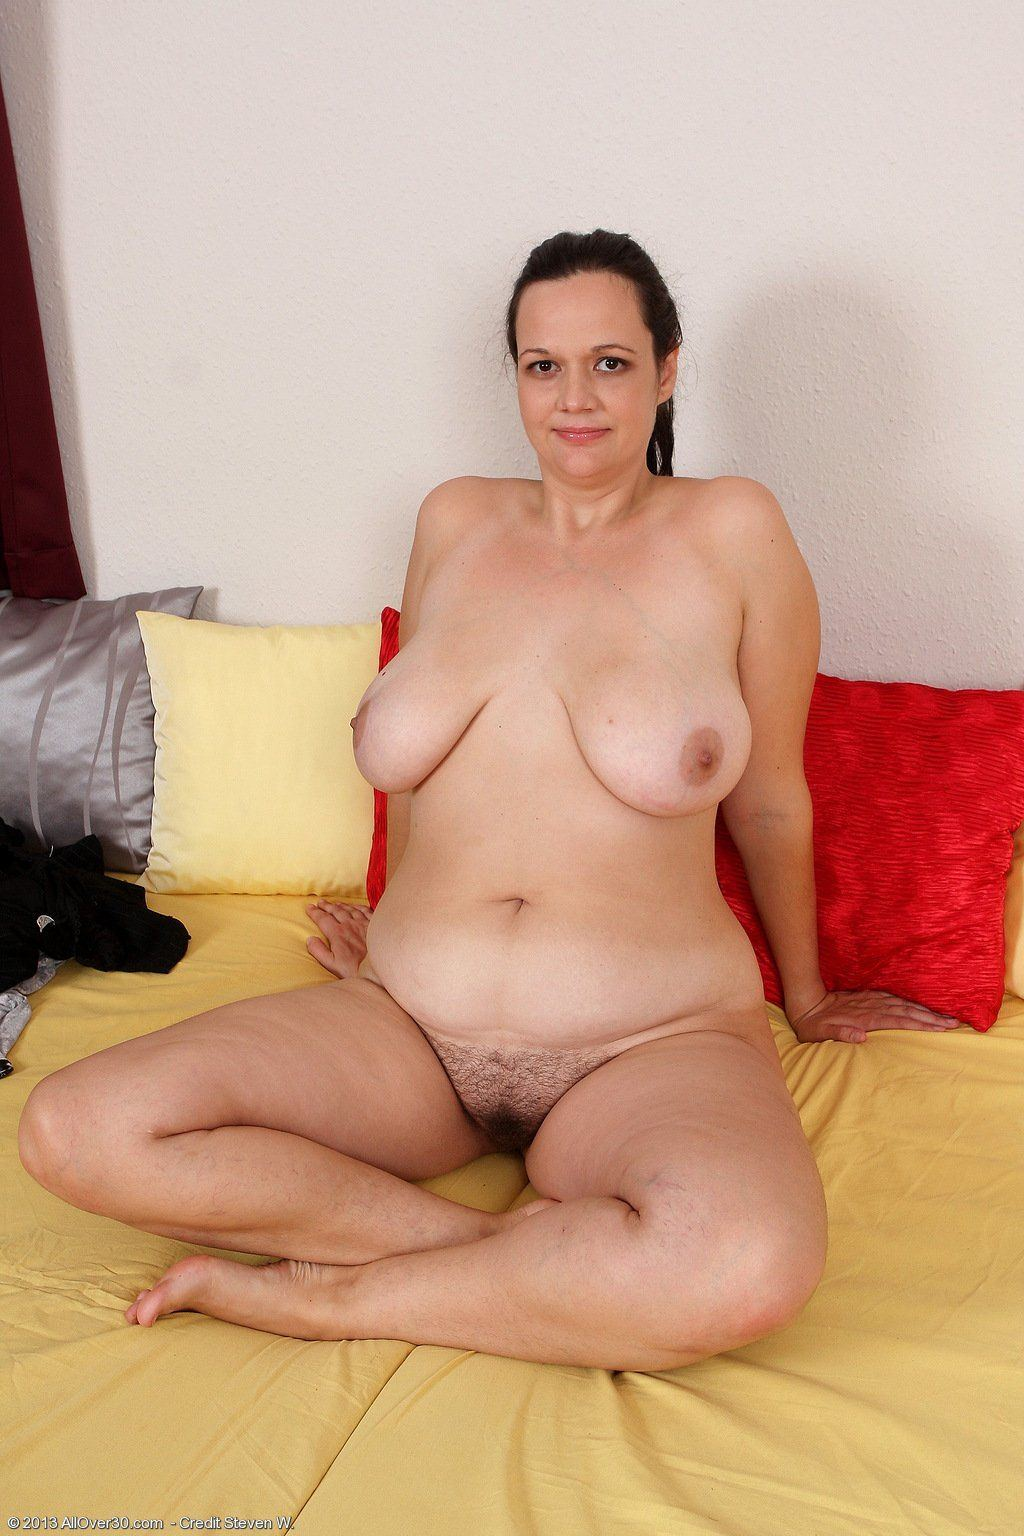 Bbw mature nude sex movies all new porn